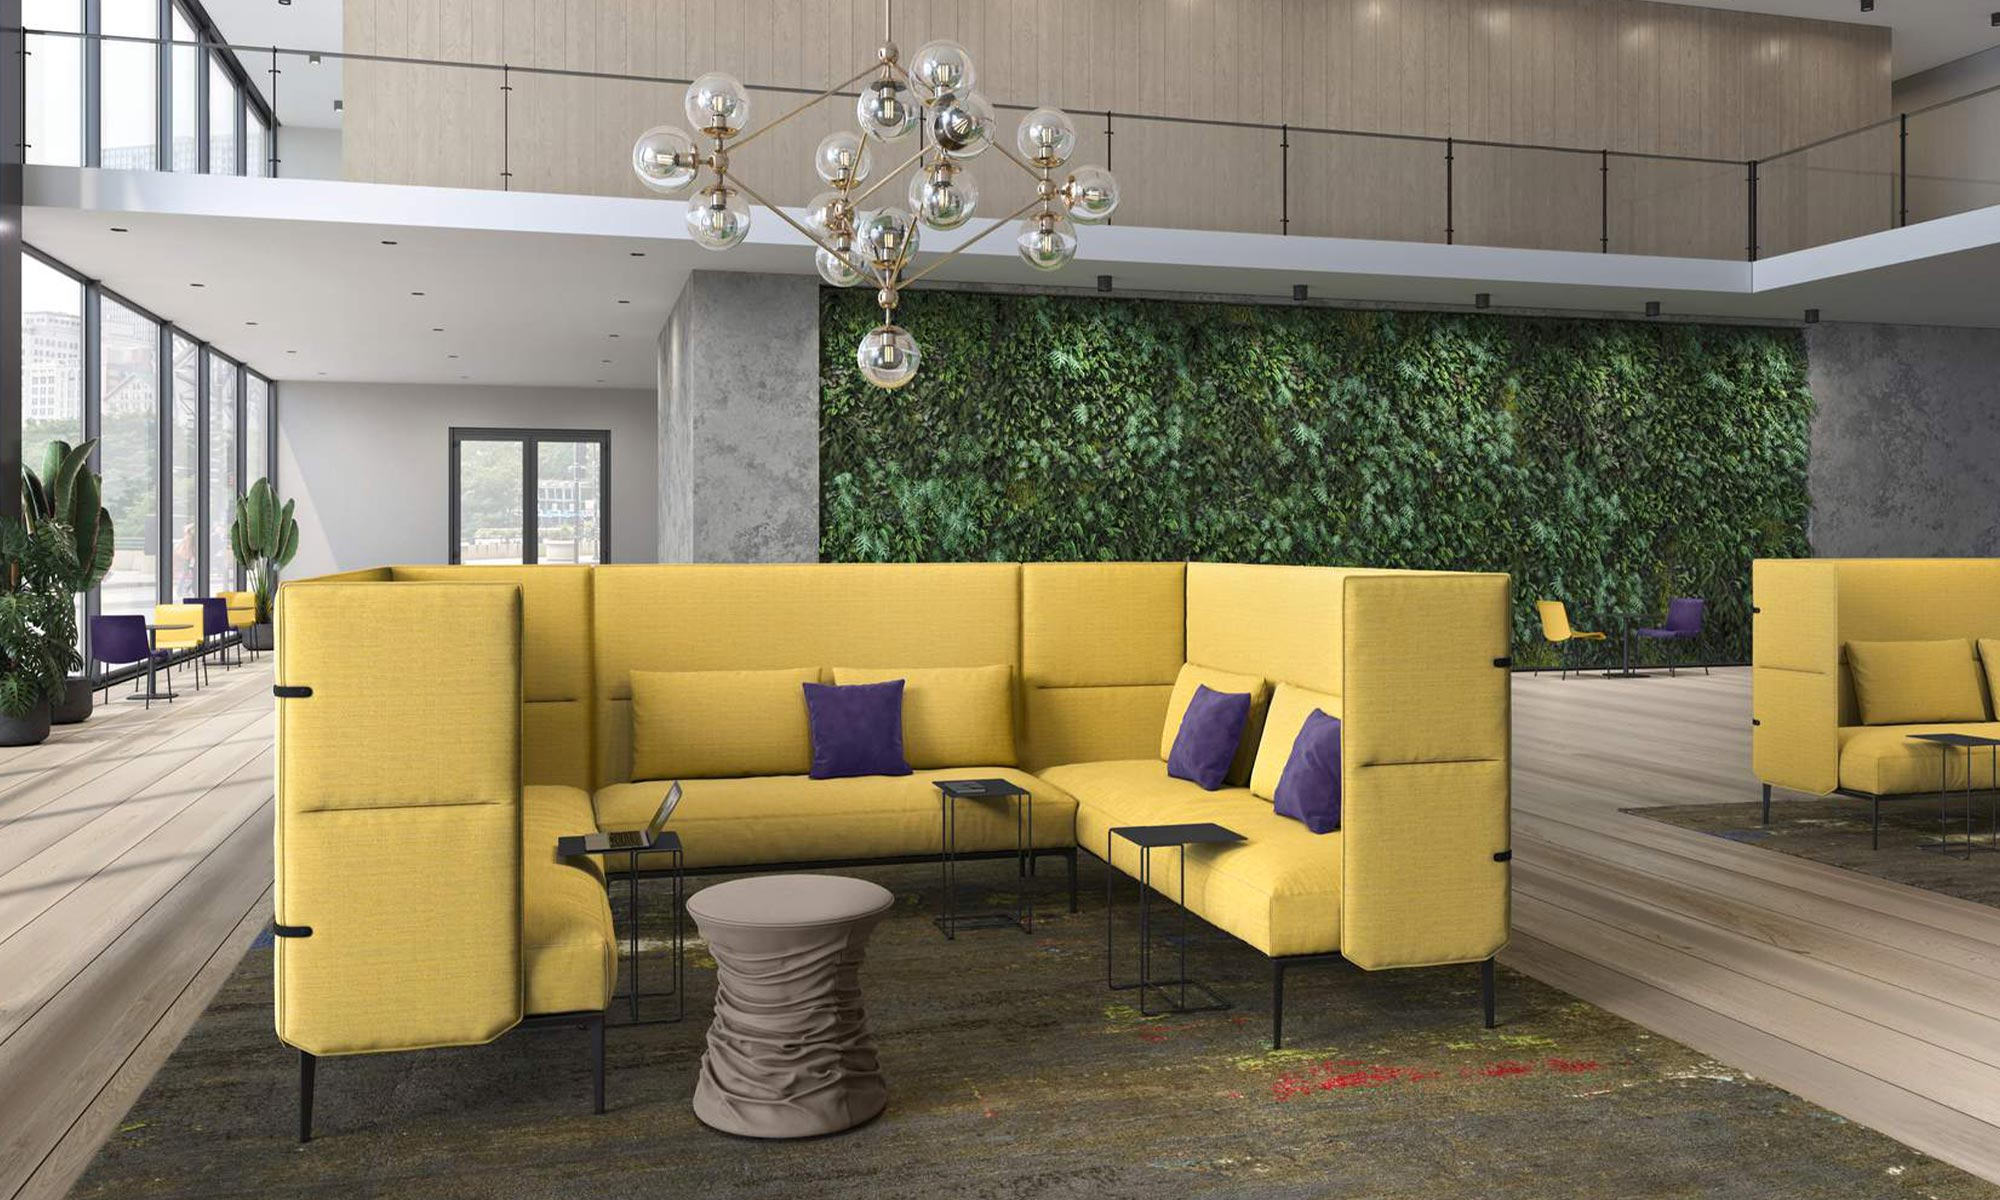 A yellow sofa in a living room